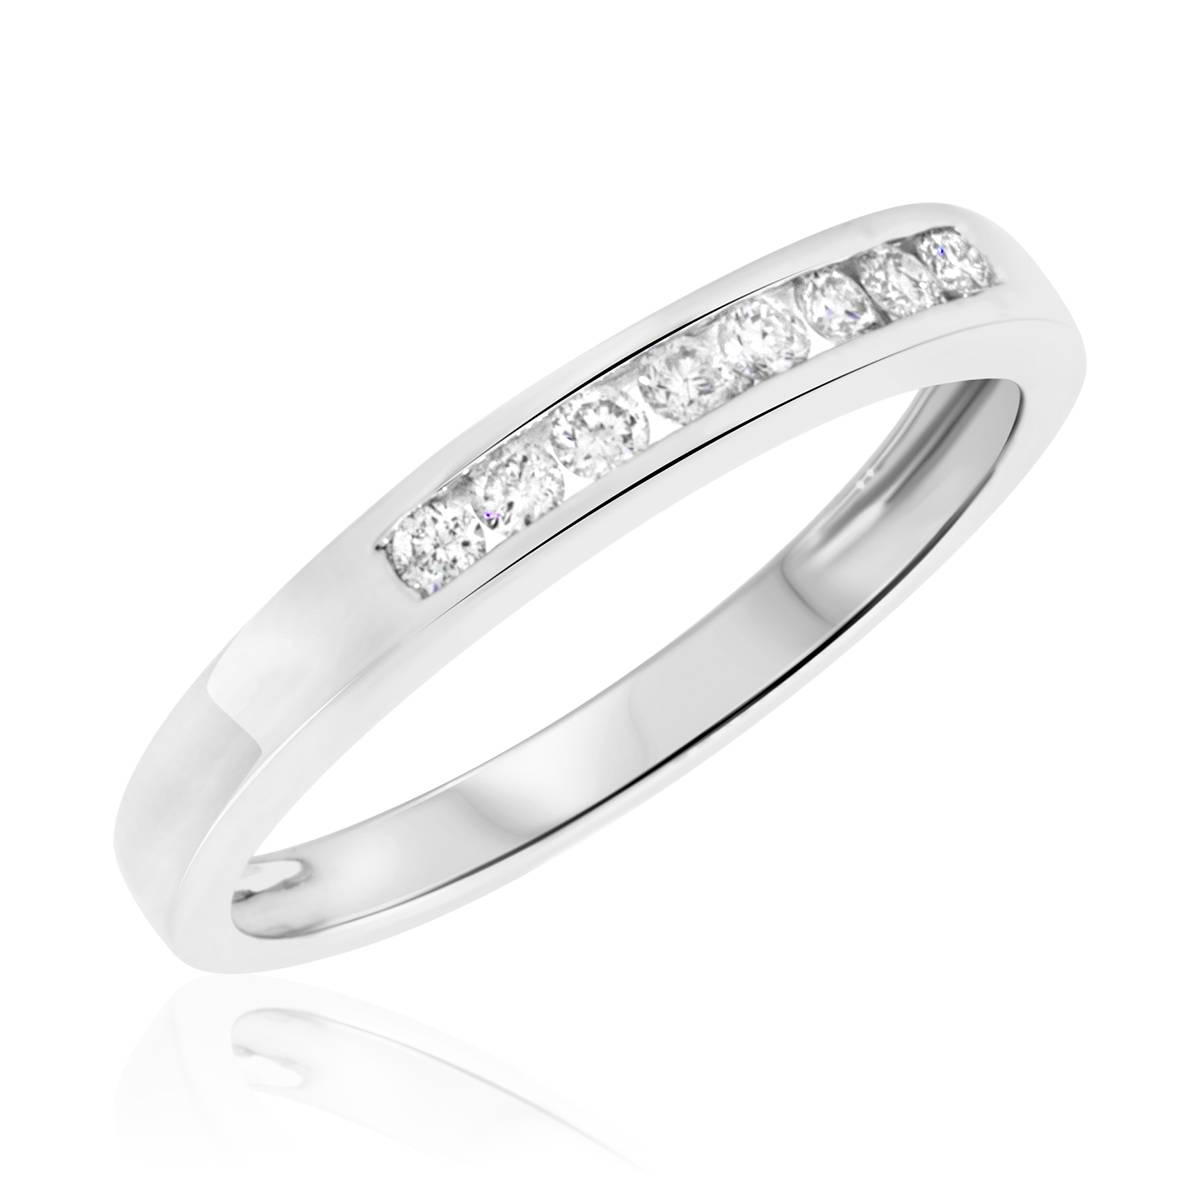 Wedding Rings : Wedding Rings White Gold Engagement Jewellery Set Regarding Cheap White Gold Wedding Rings (View 11 of 15)